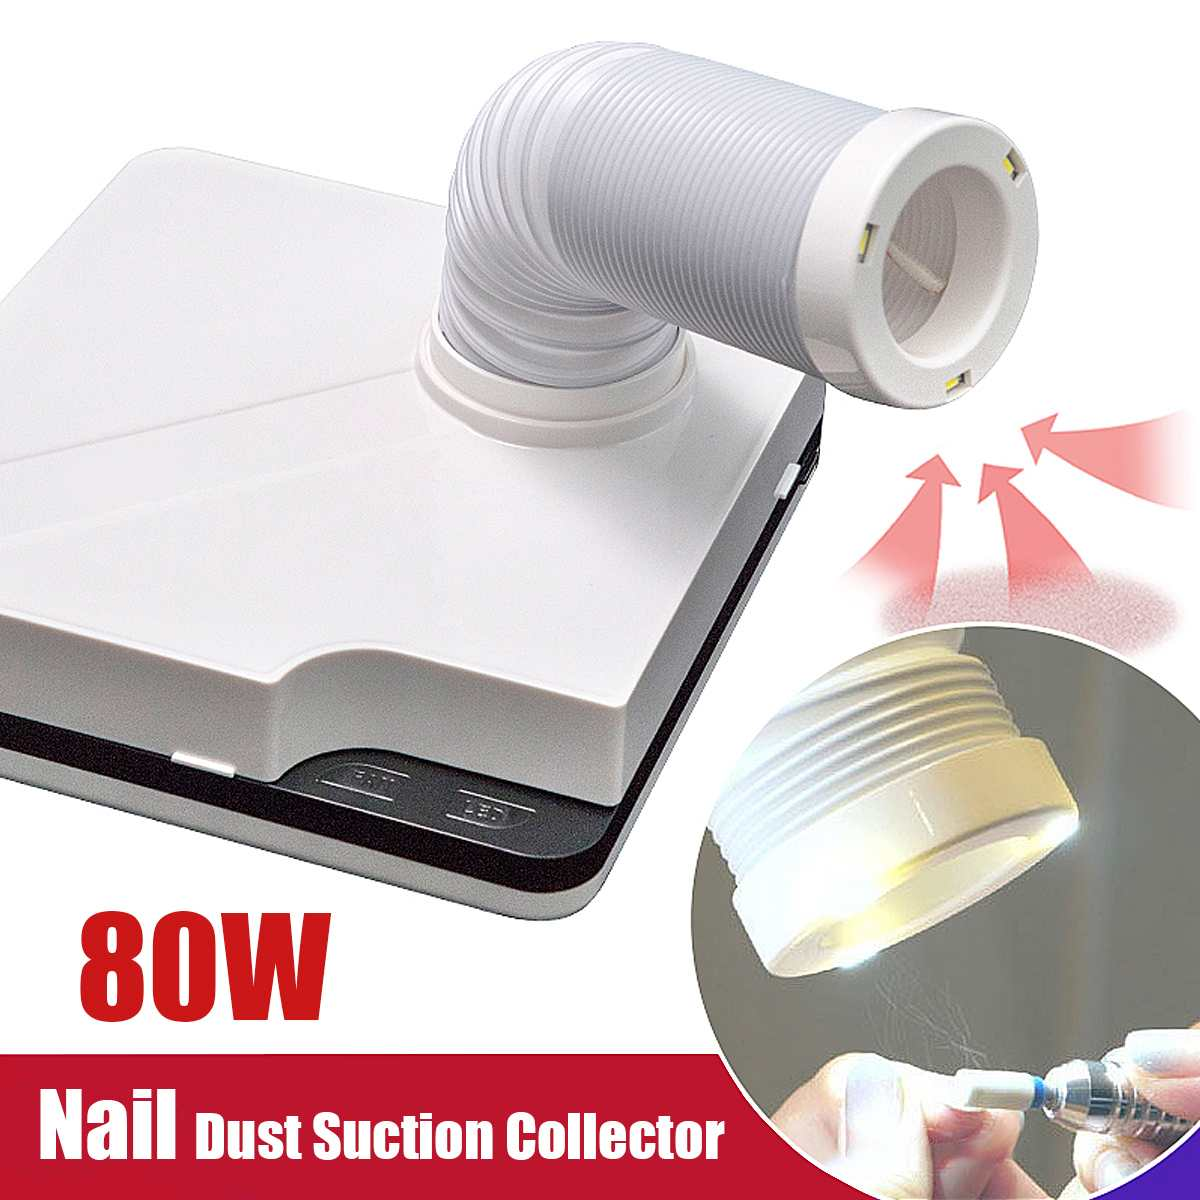 80W Strong Power Nail Suction Dust Collector Nail Dust Collector Vacuum Cleaner Nail Fan Art Salon